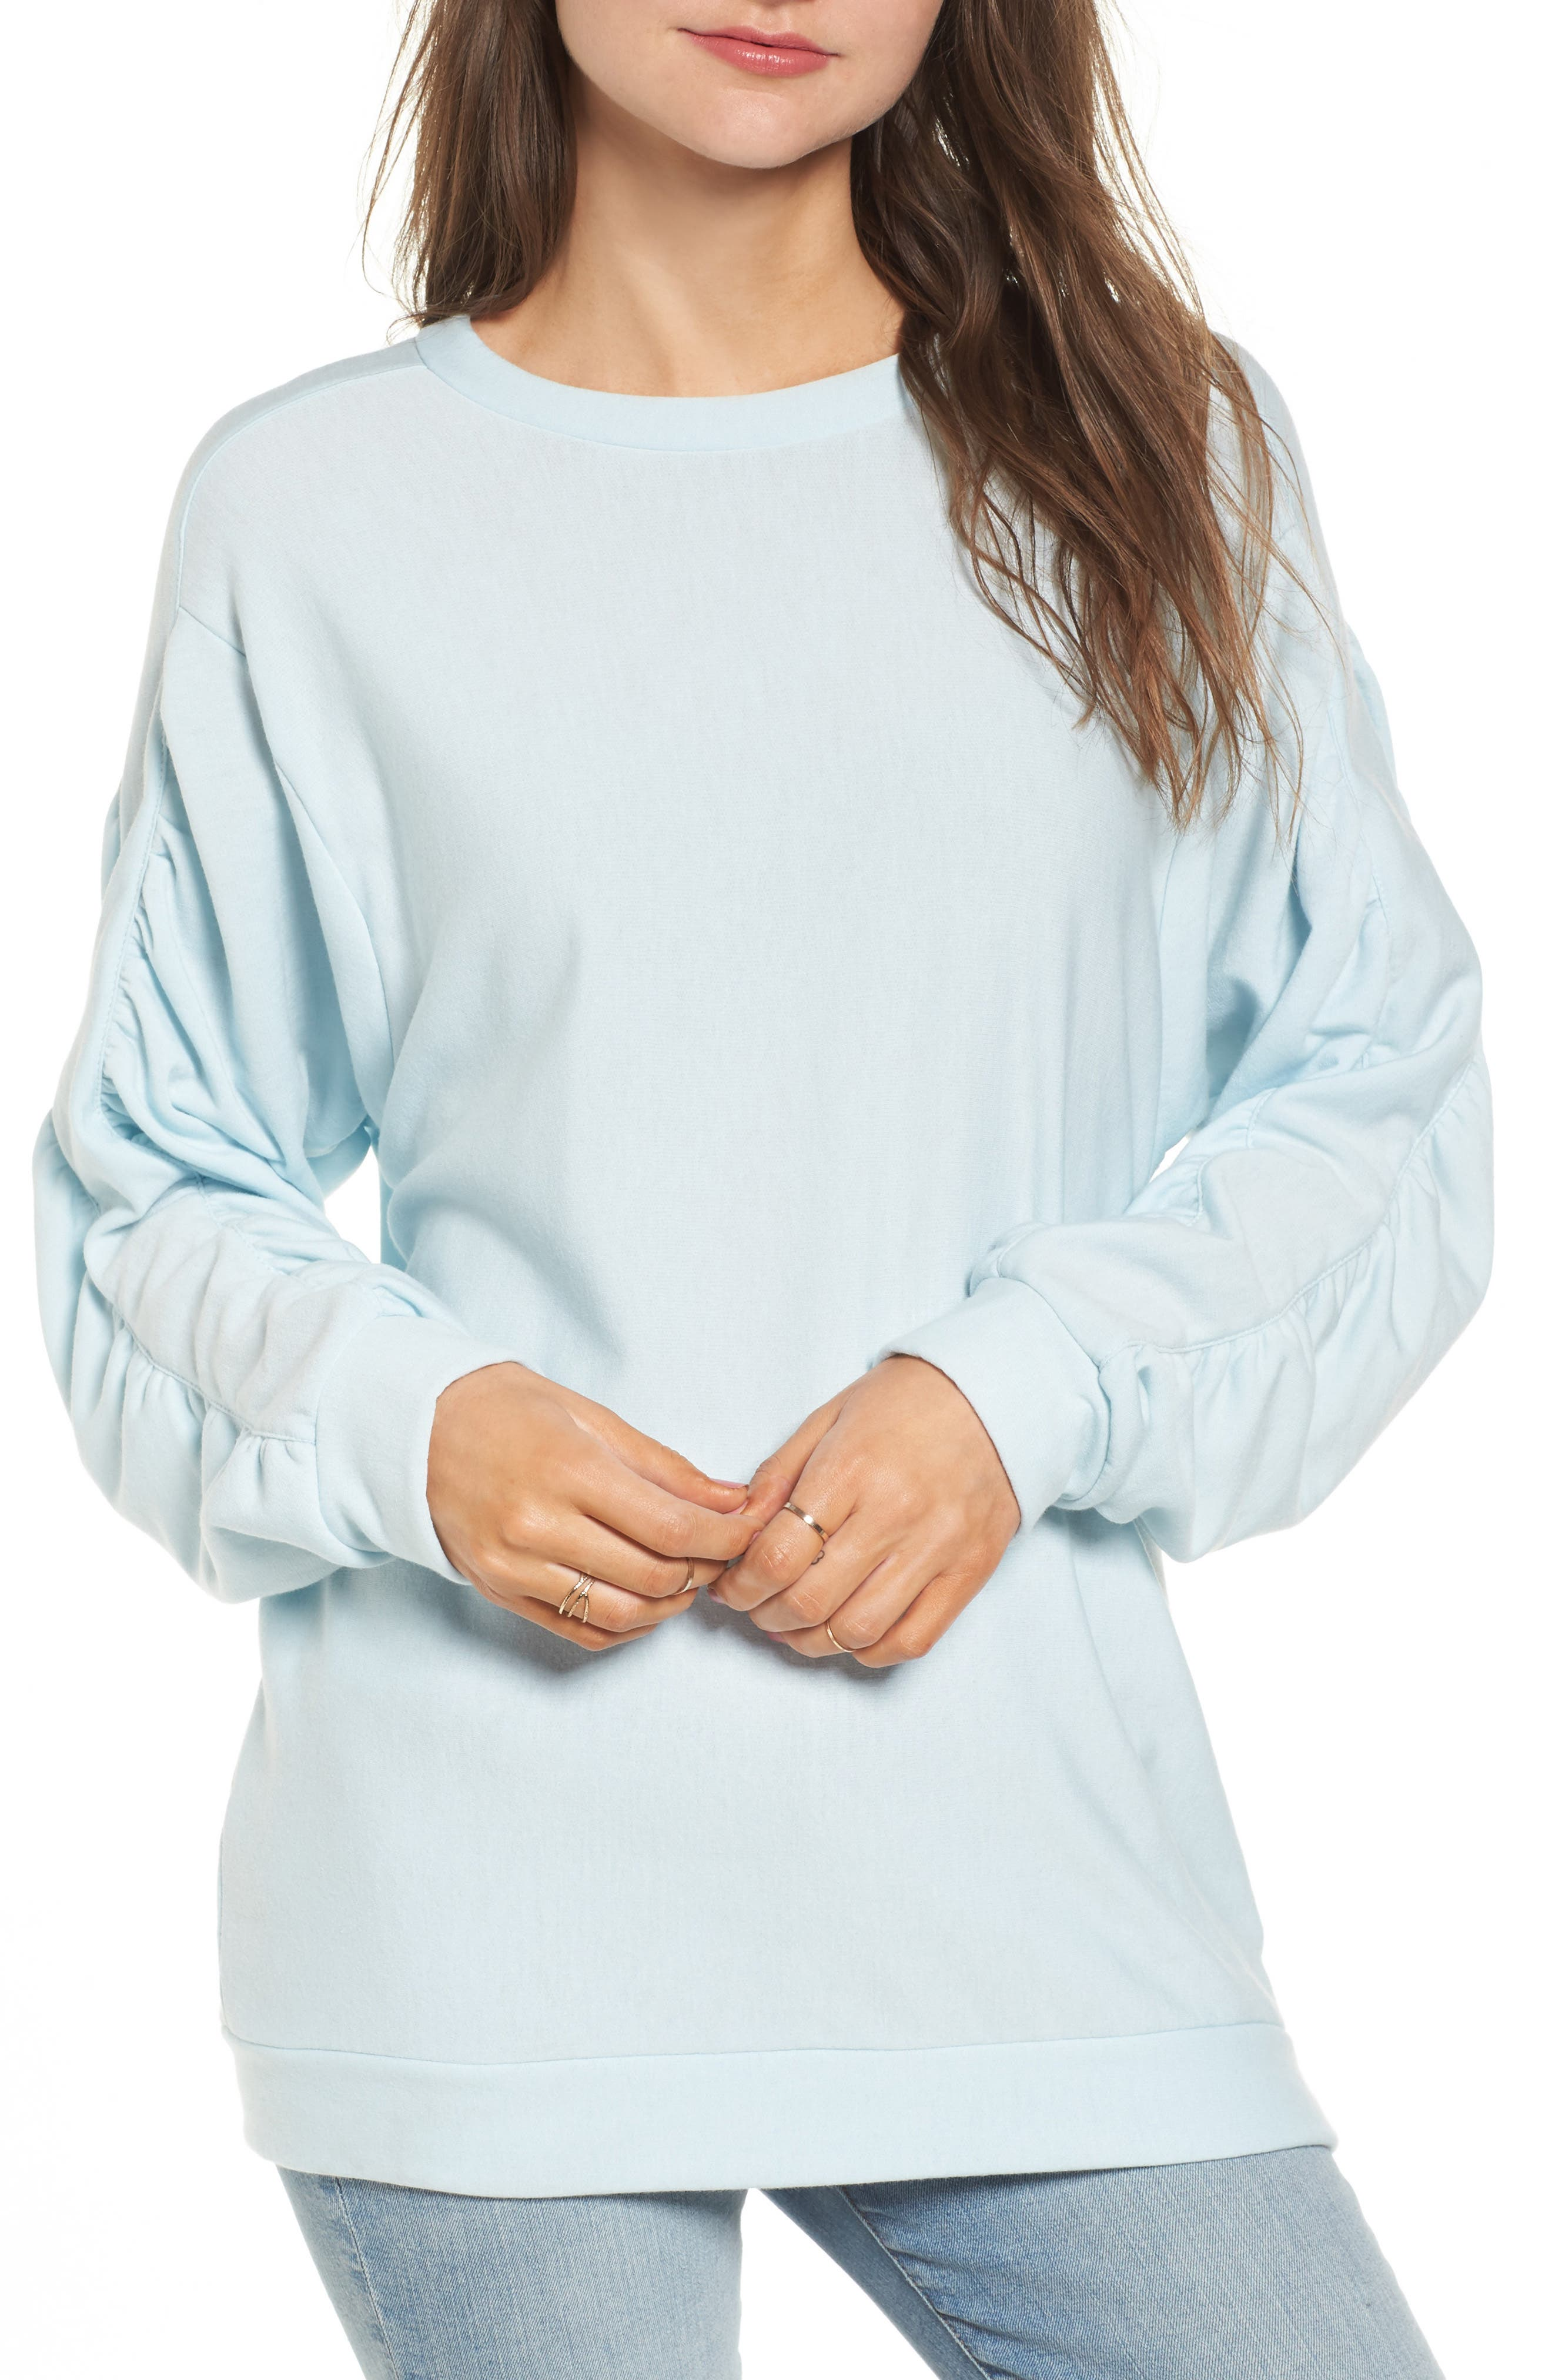 Main Image - PST by Project Social T Ruched Sleeve Sweatshirt